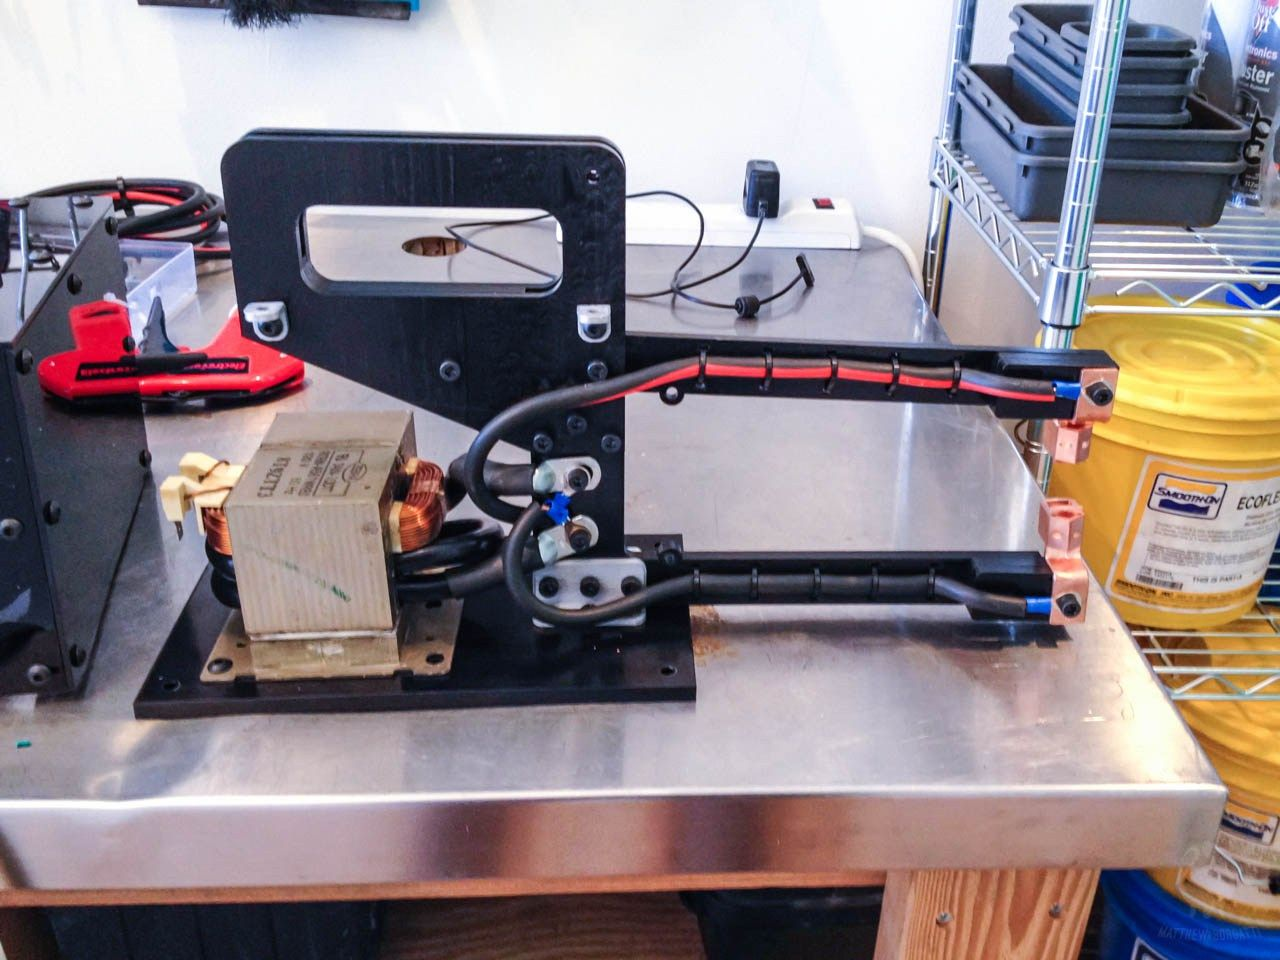 Upcycle A Microwave Into Spot Welder Good Tools Pinterest Welding Diagram Long Time Maker Matthew Borgatti Recently Completed Work On Homemade Built From Scrapped And Few Other Parts